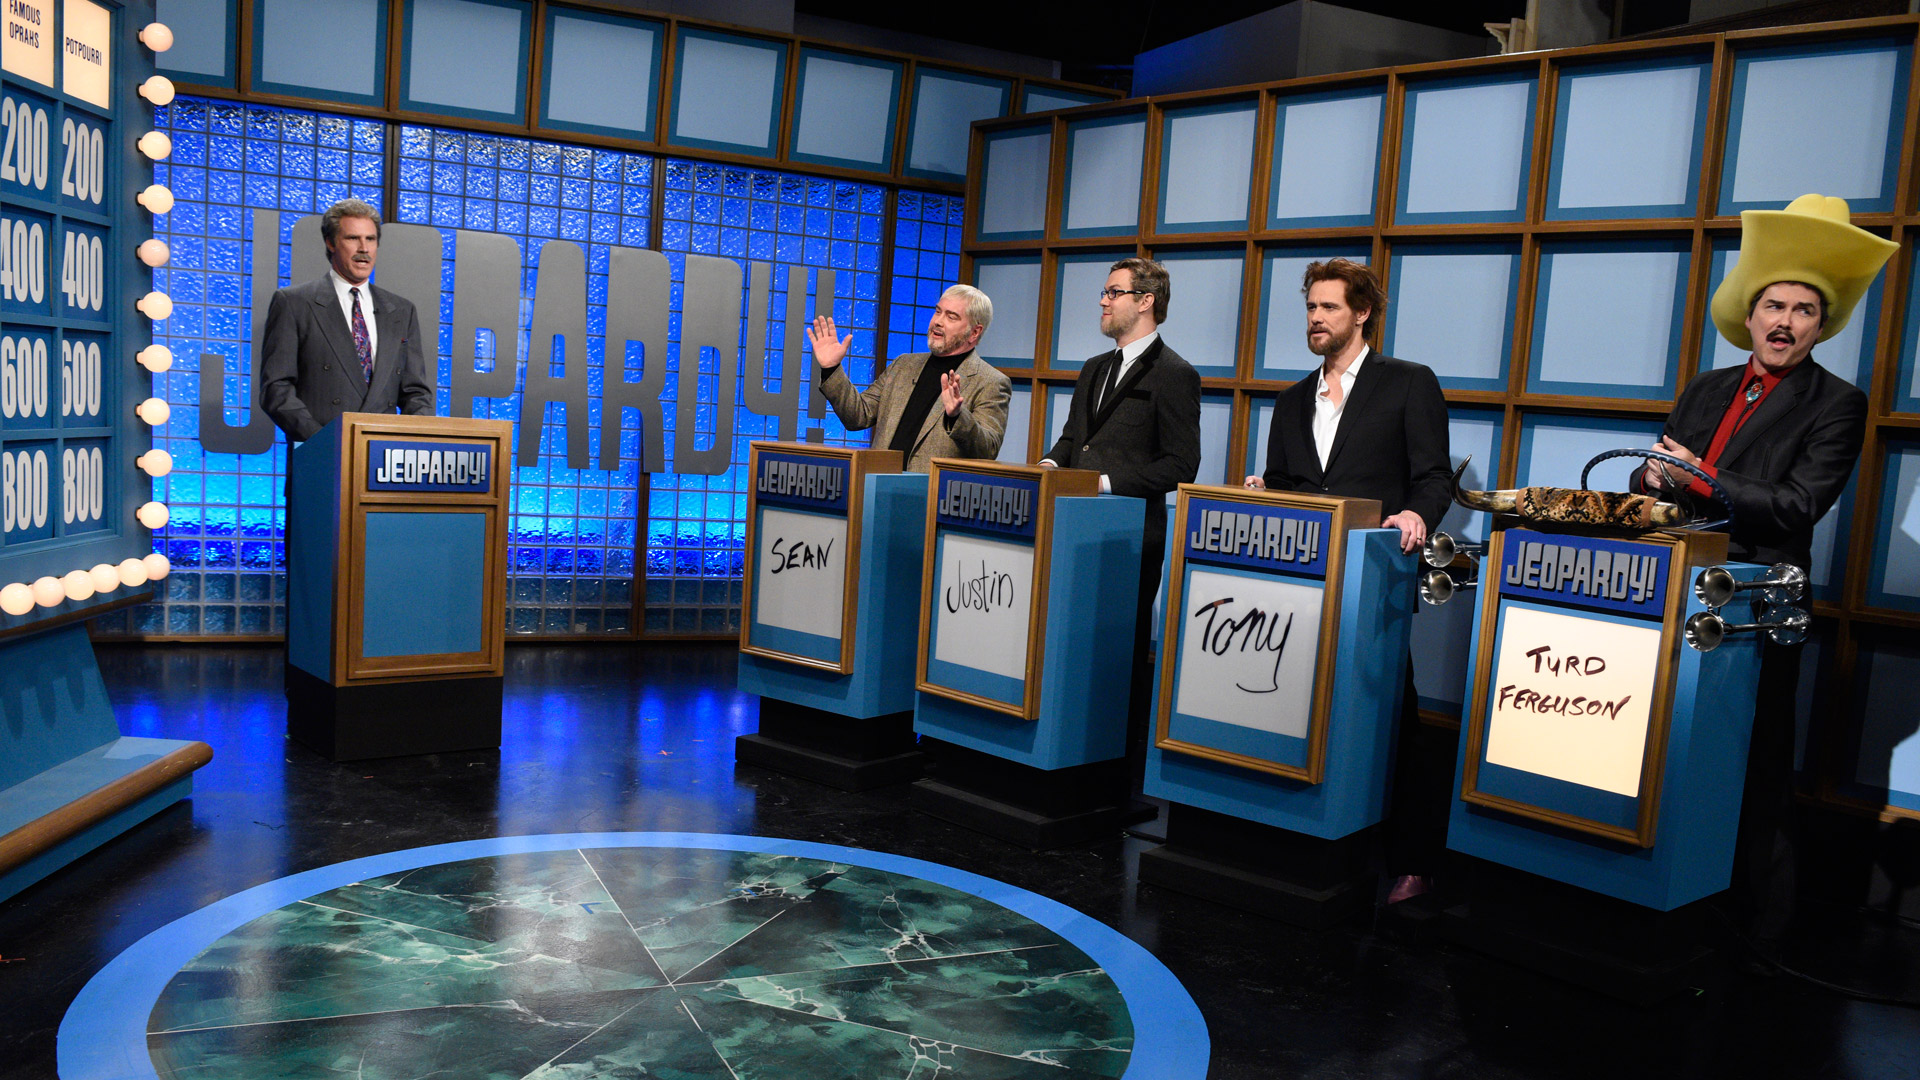 CELEBRITY JEOPARDY! (SATURDAY NIGHT LIVE) - WikiVidi ...